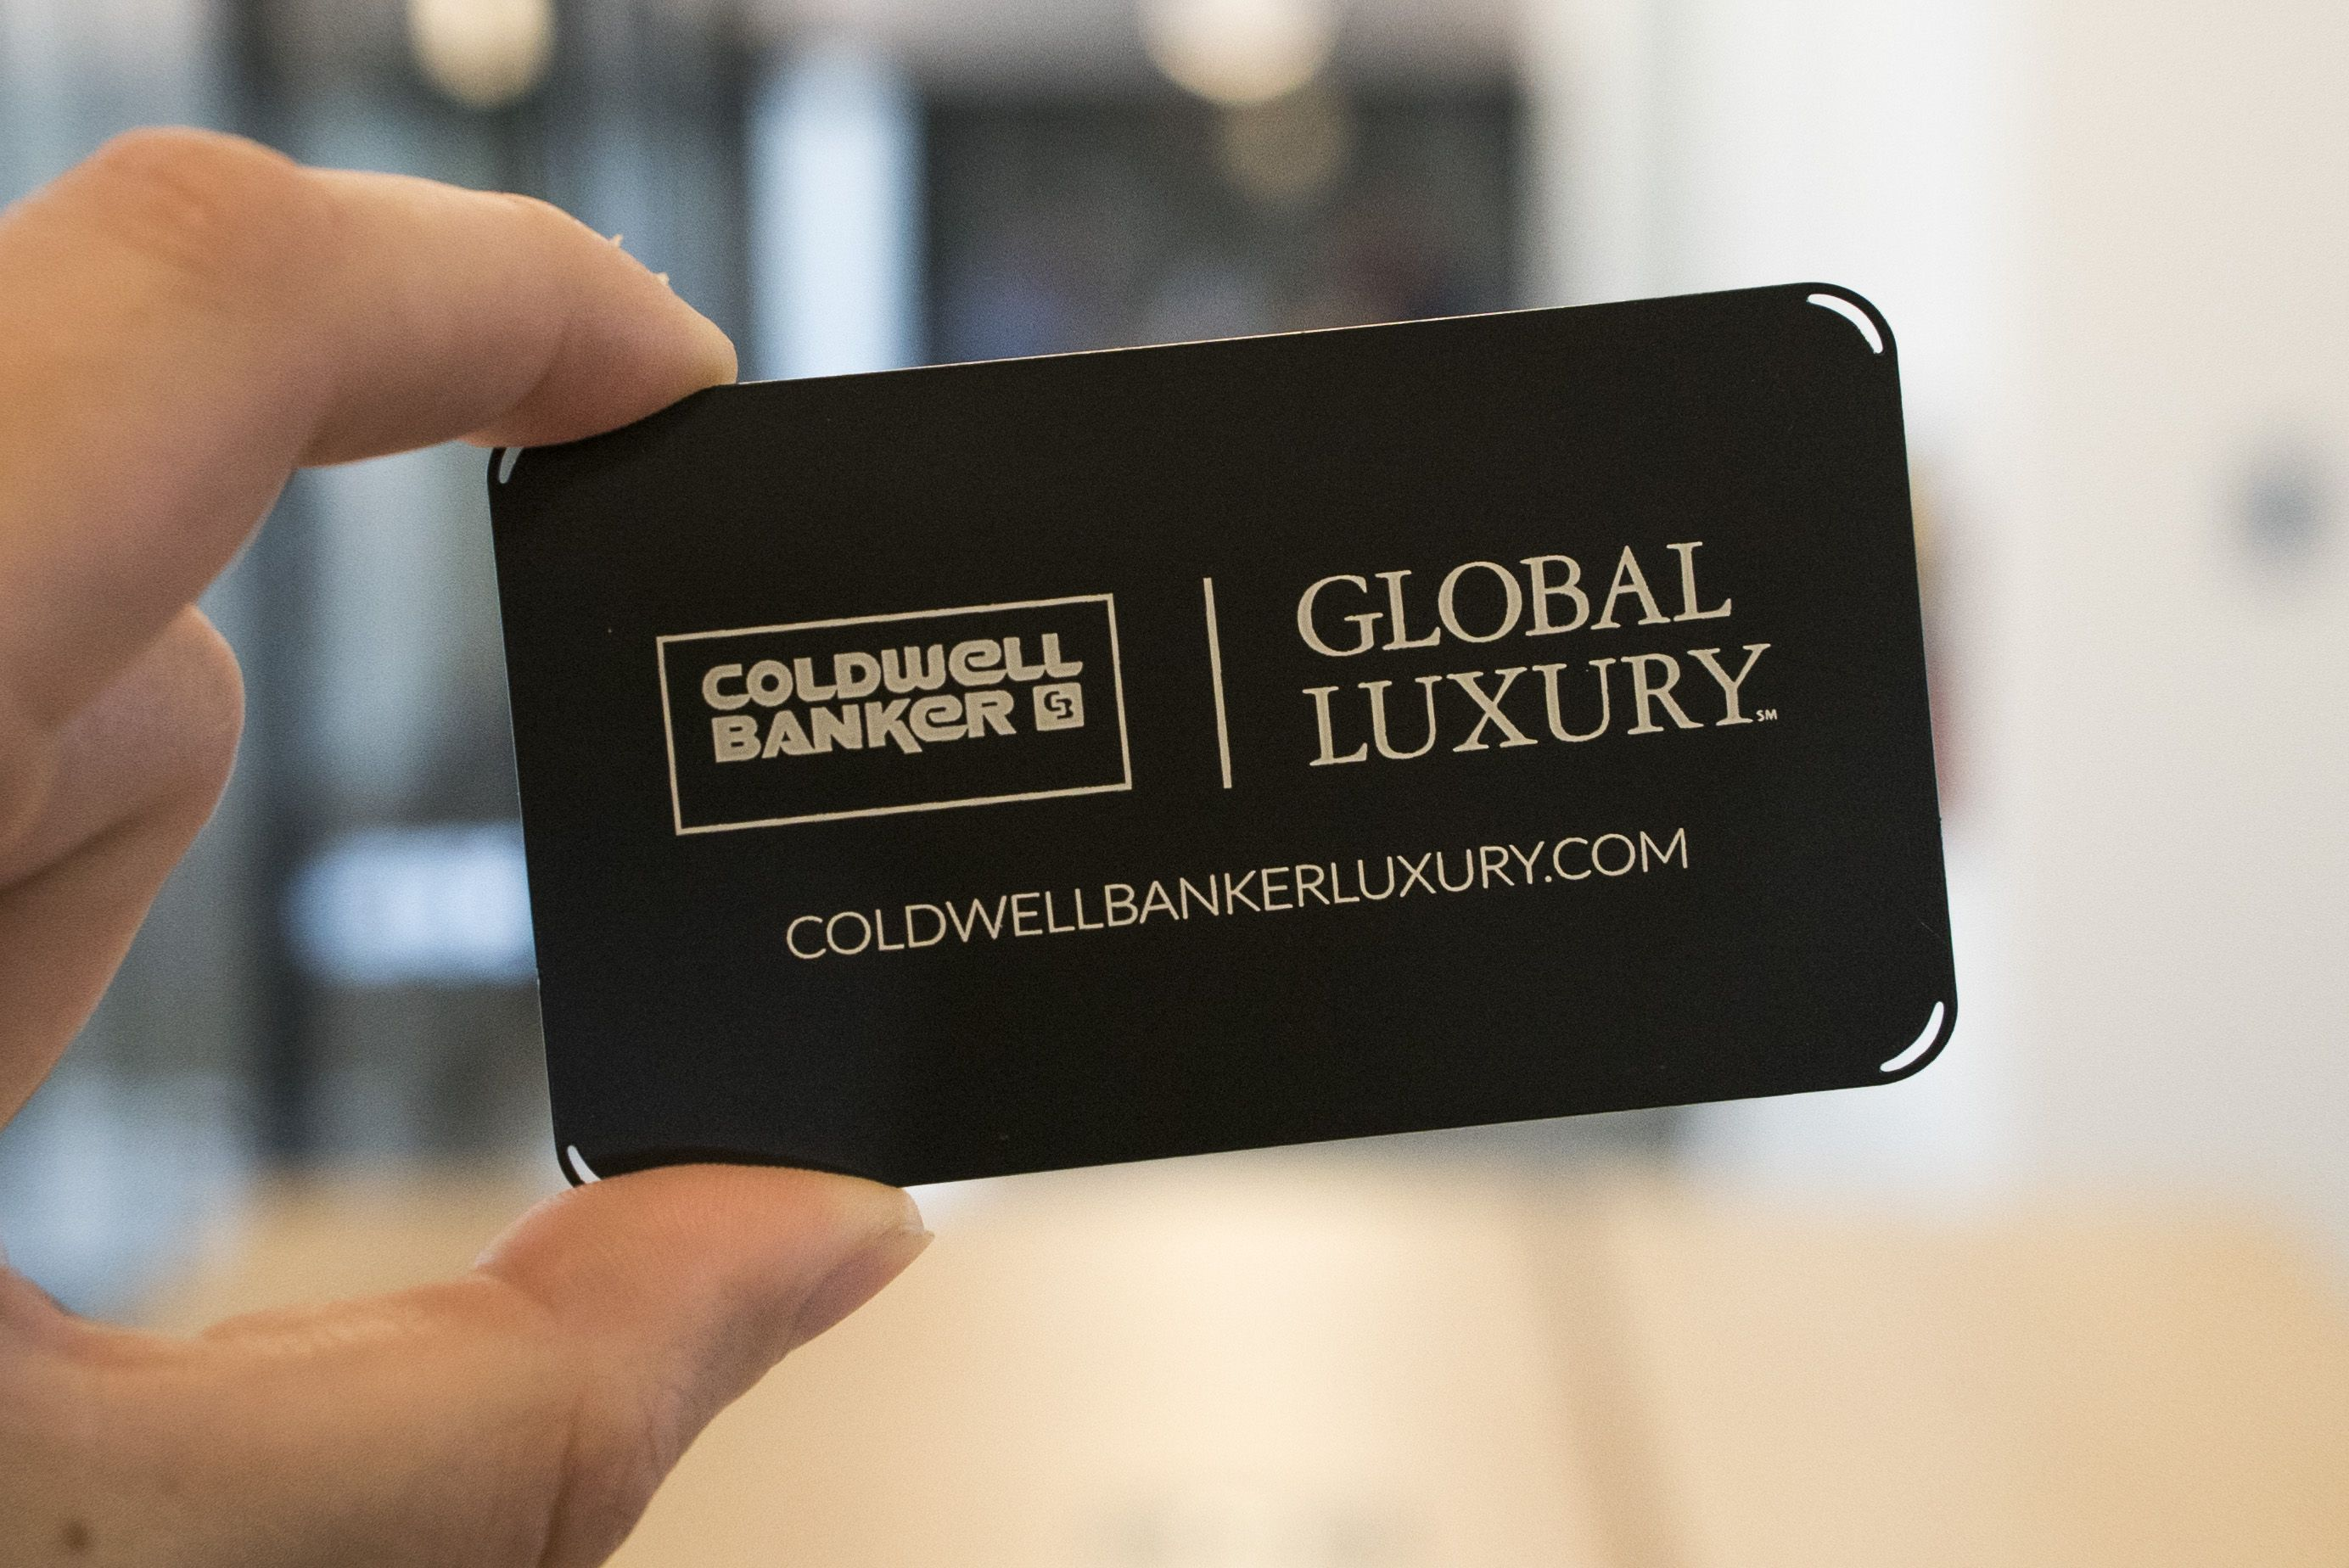 Custom Metal Business Card For A Luxury Real Estate Agent With Coldwell Banker Metal Business Cards Luxury Real Estate Agent Realtor Business Cards